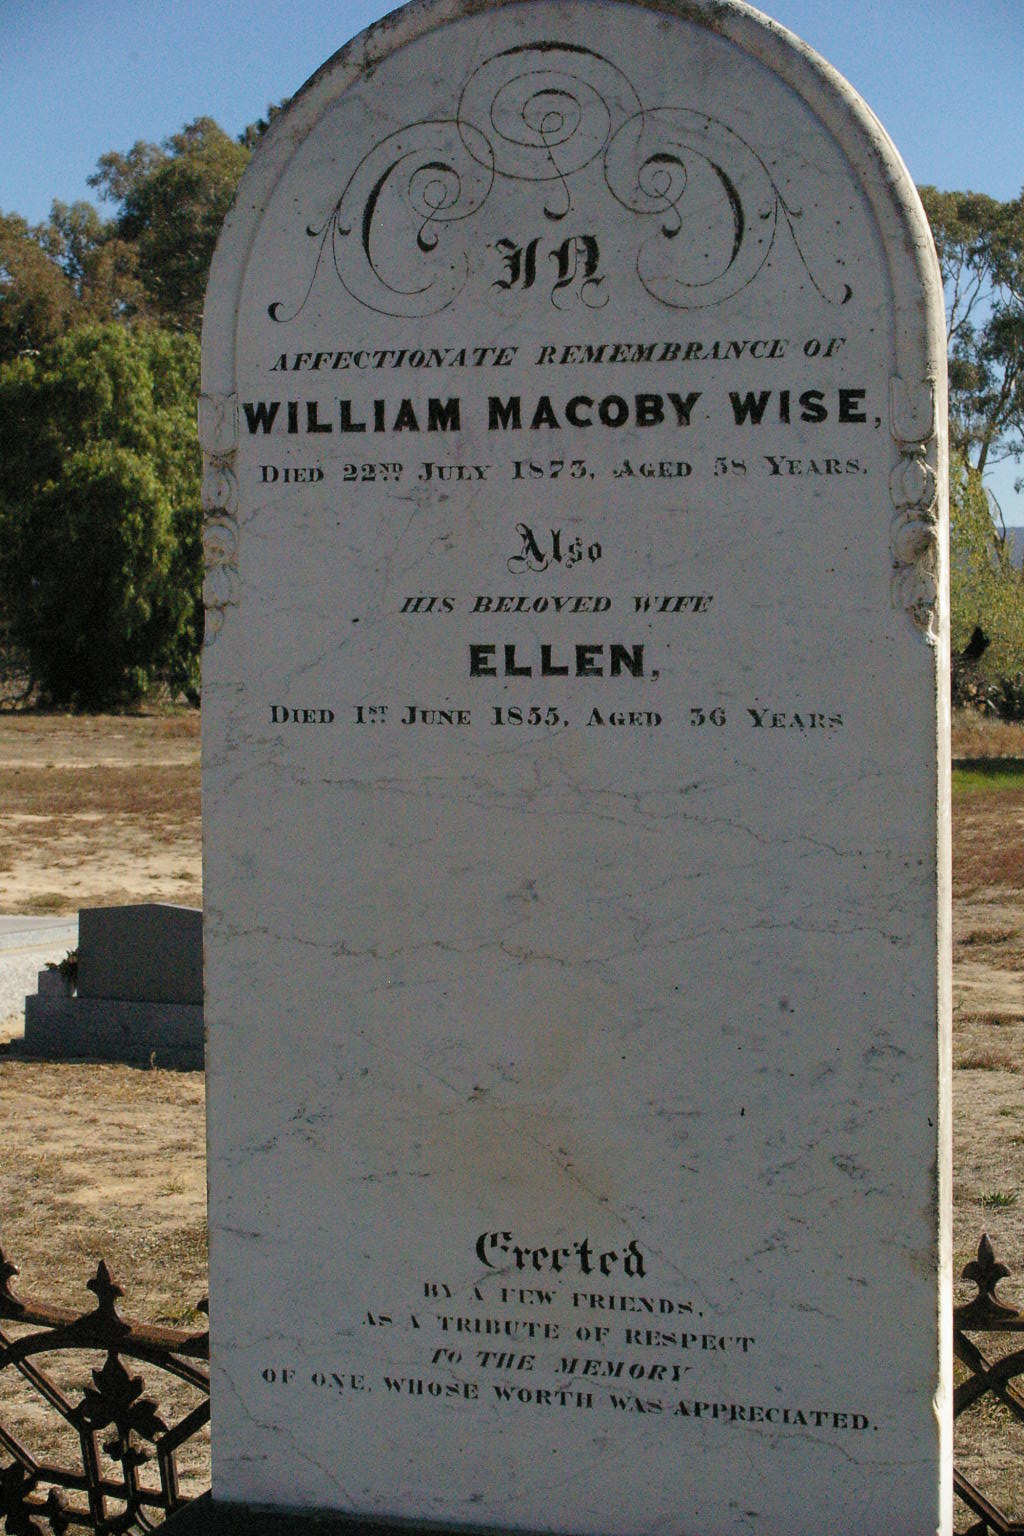 C:\Users\Virginia Rundle\Pictures\Family Tree\WISE William Macoby, Ellen.jpg